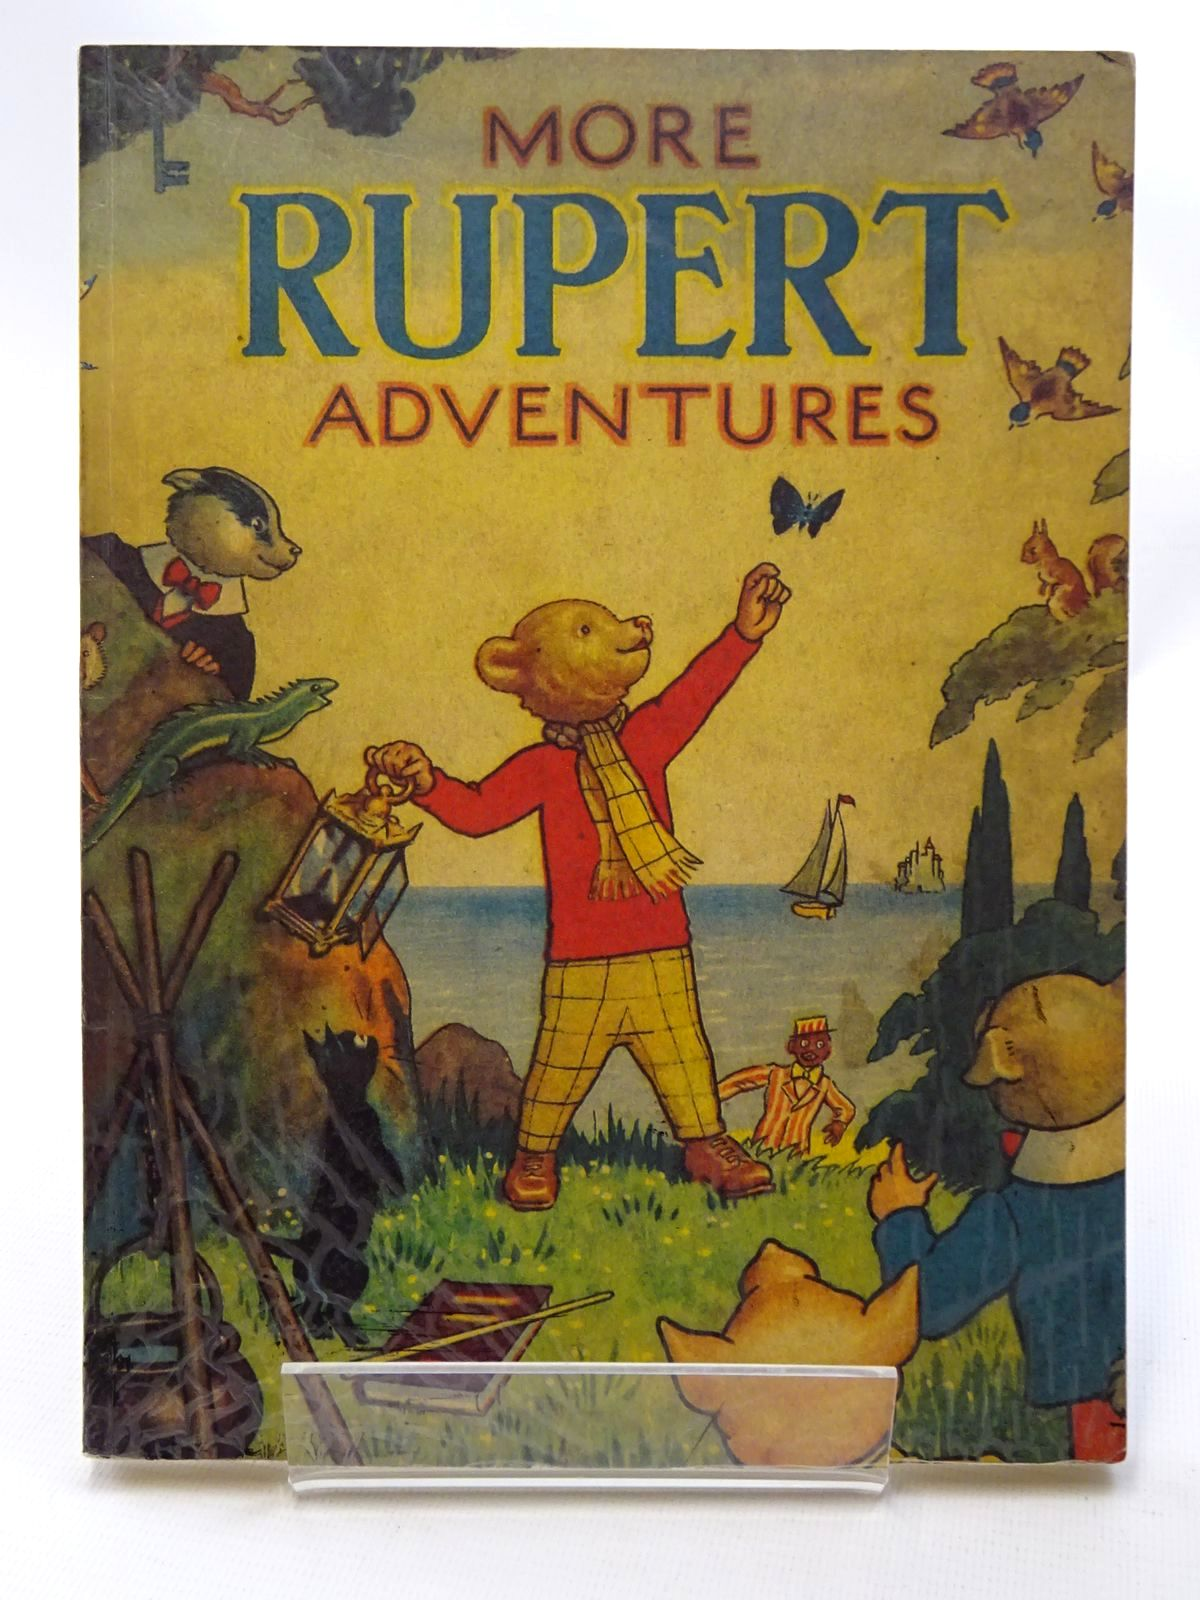 Photo of RUPERT ANNUAL 1943 (FACSIMILE) - MORE RUPERT ADVENTURES written by Bestall, Alfred illustrated by Bestall, Alfred published by Pedigree Books Limited (STOCK CODE: 1317213)  for sale by Stella & Rose's Books